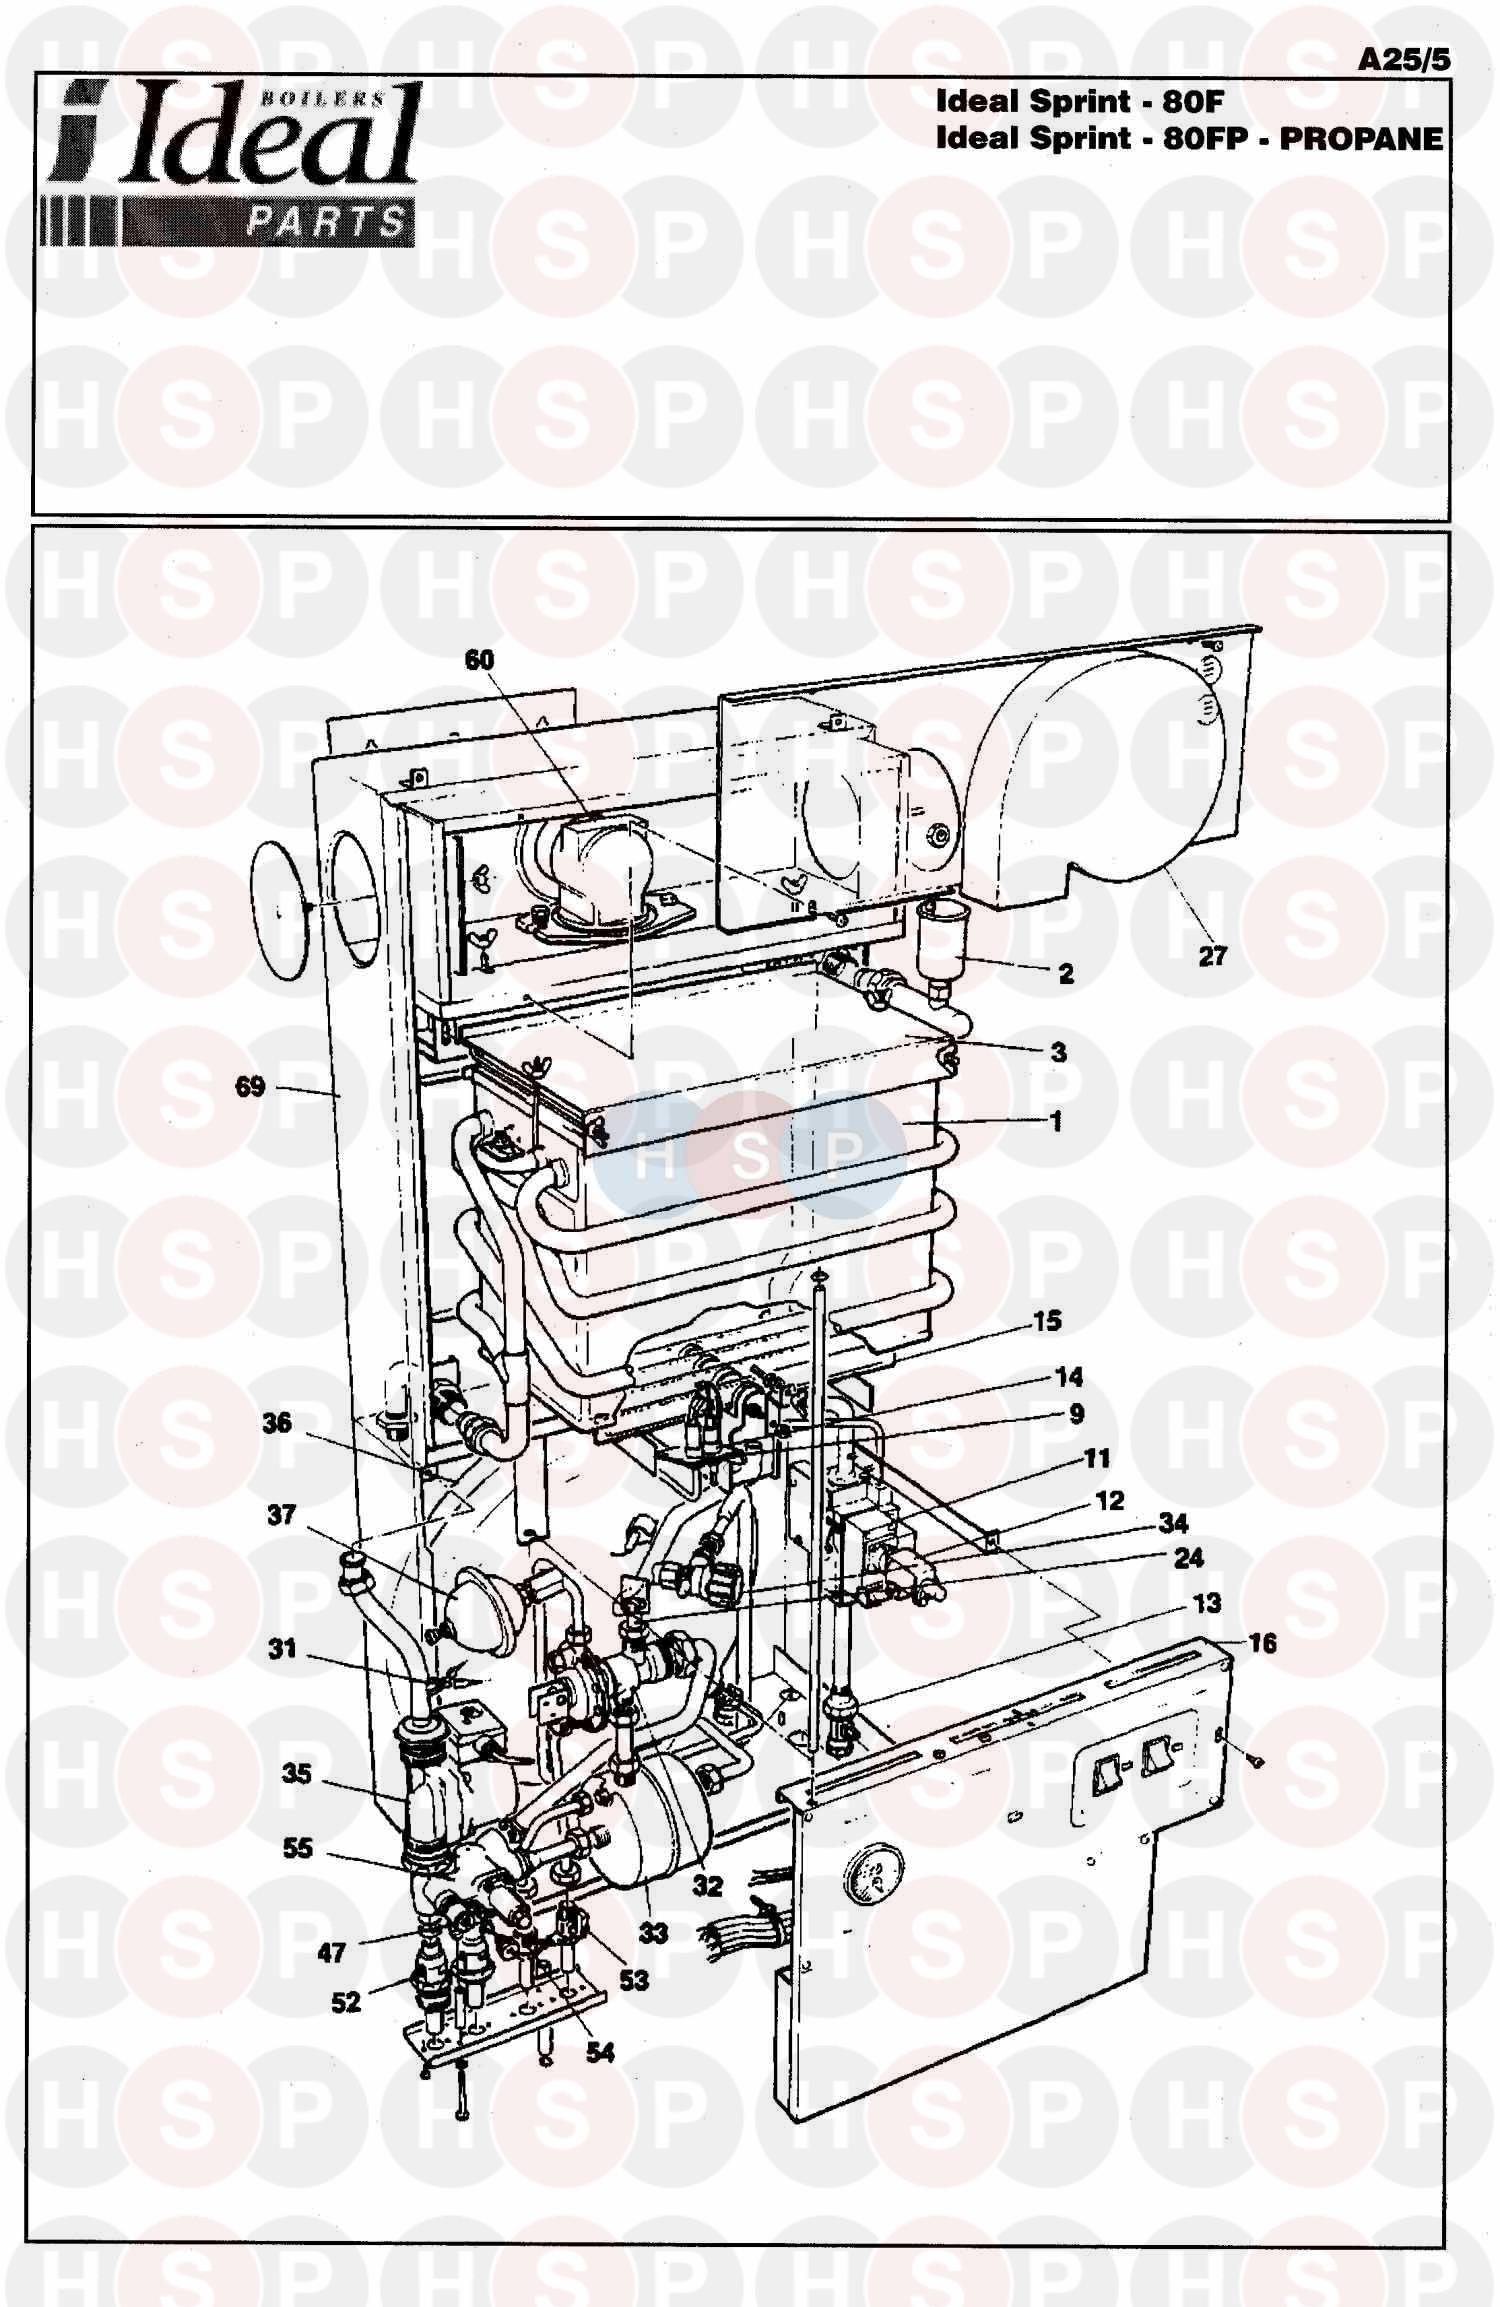 Ideal SPRINT 80F (BOILER ASSEMBLY 1) Diagram | Heating Spare Parts